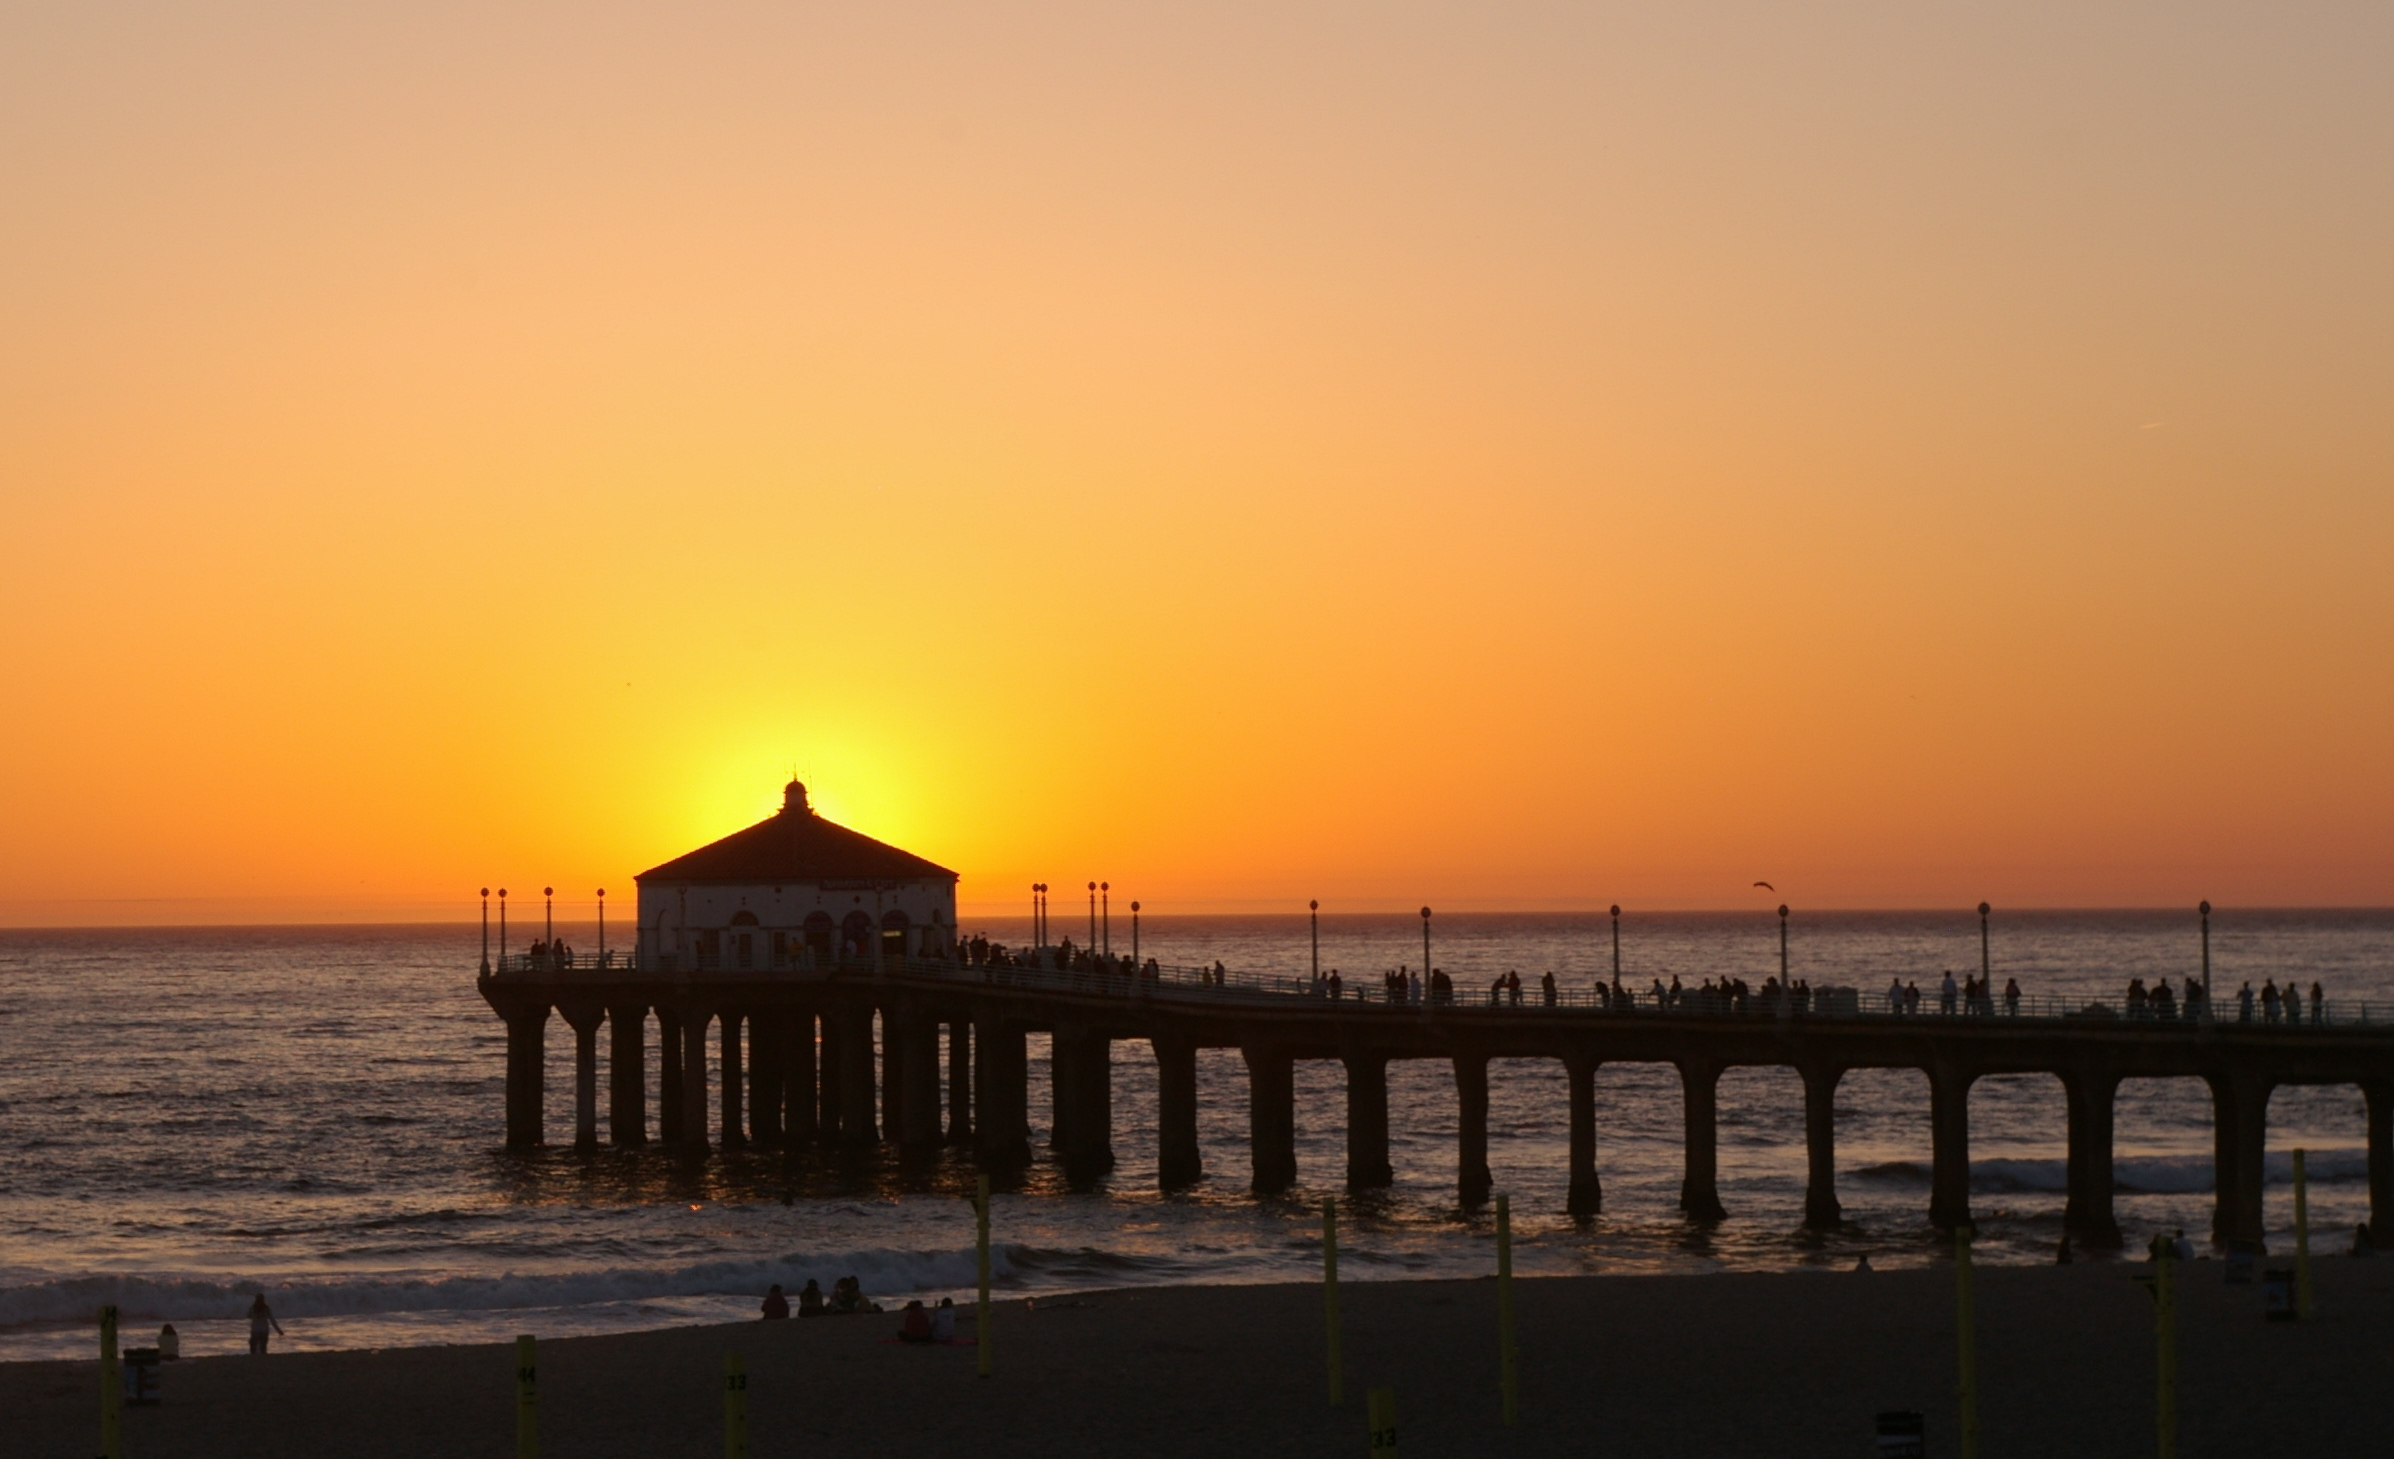 Manhattan_Beach_Pier_at_sunset,_with_the_sun_behind_the_roundhouse_at_pier's_end